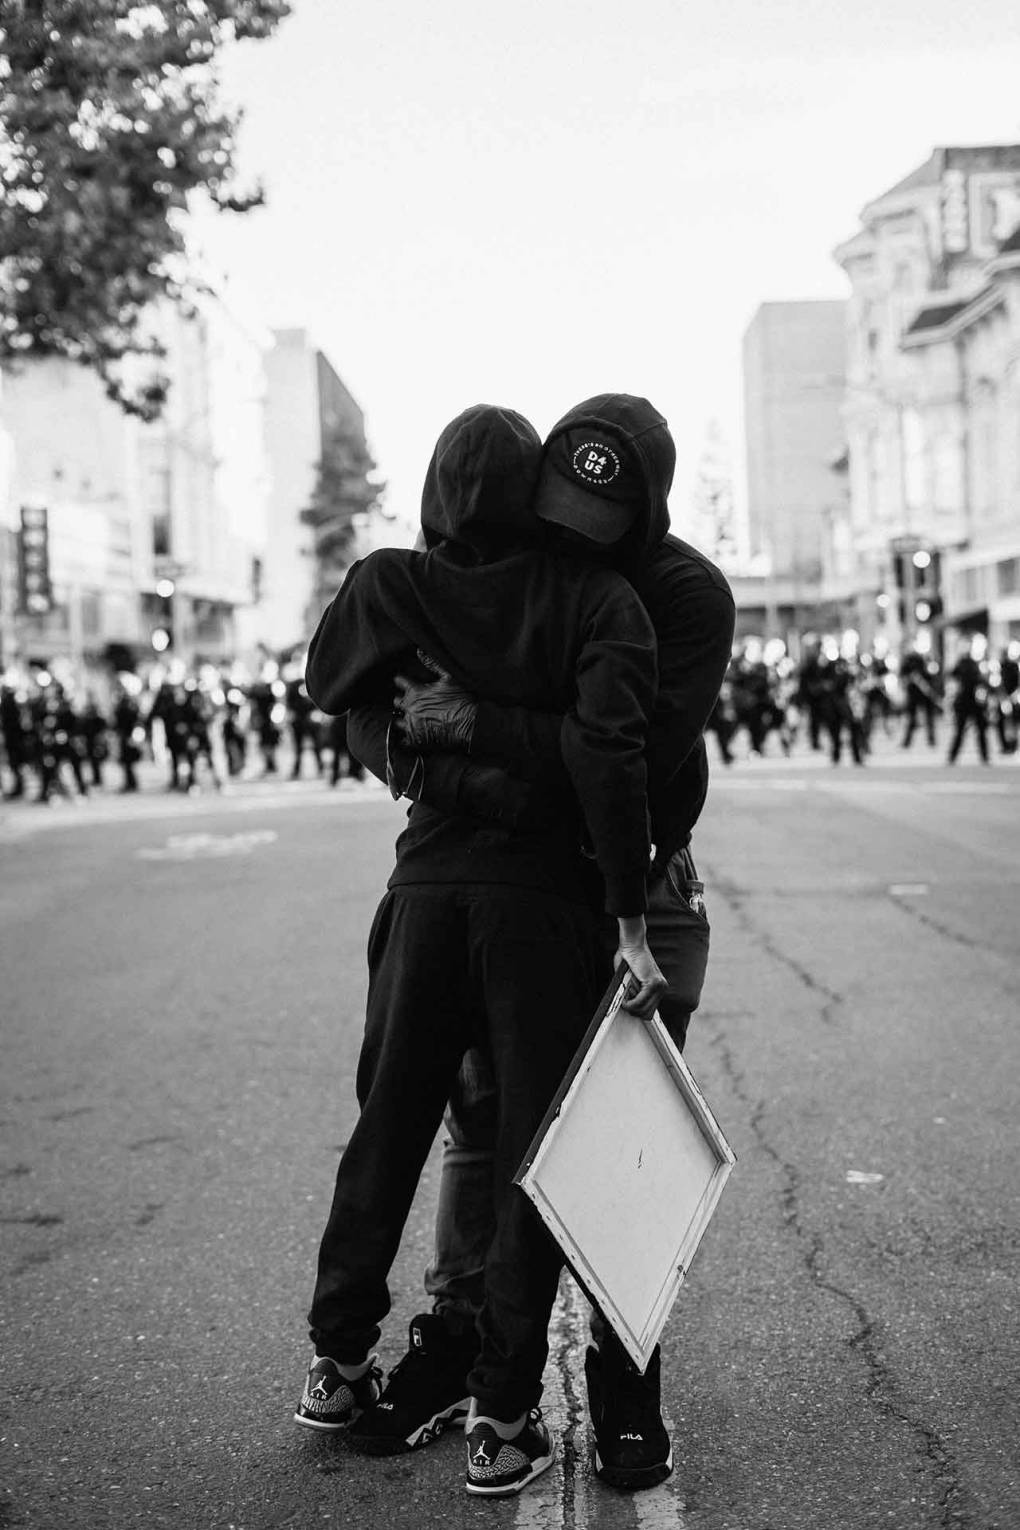 An embrace in the midst of chaos in downtown Oakland during protests in late May 2020.